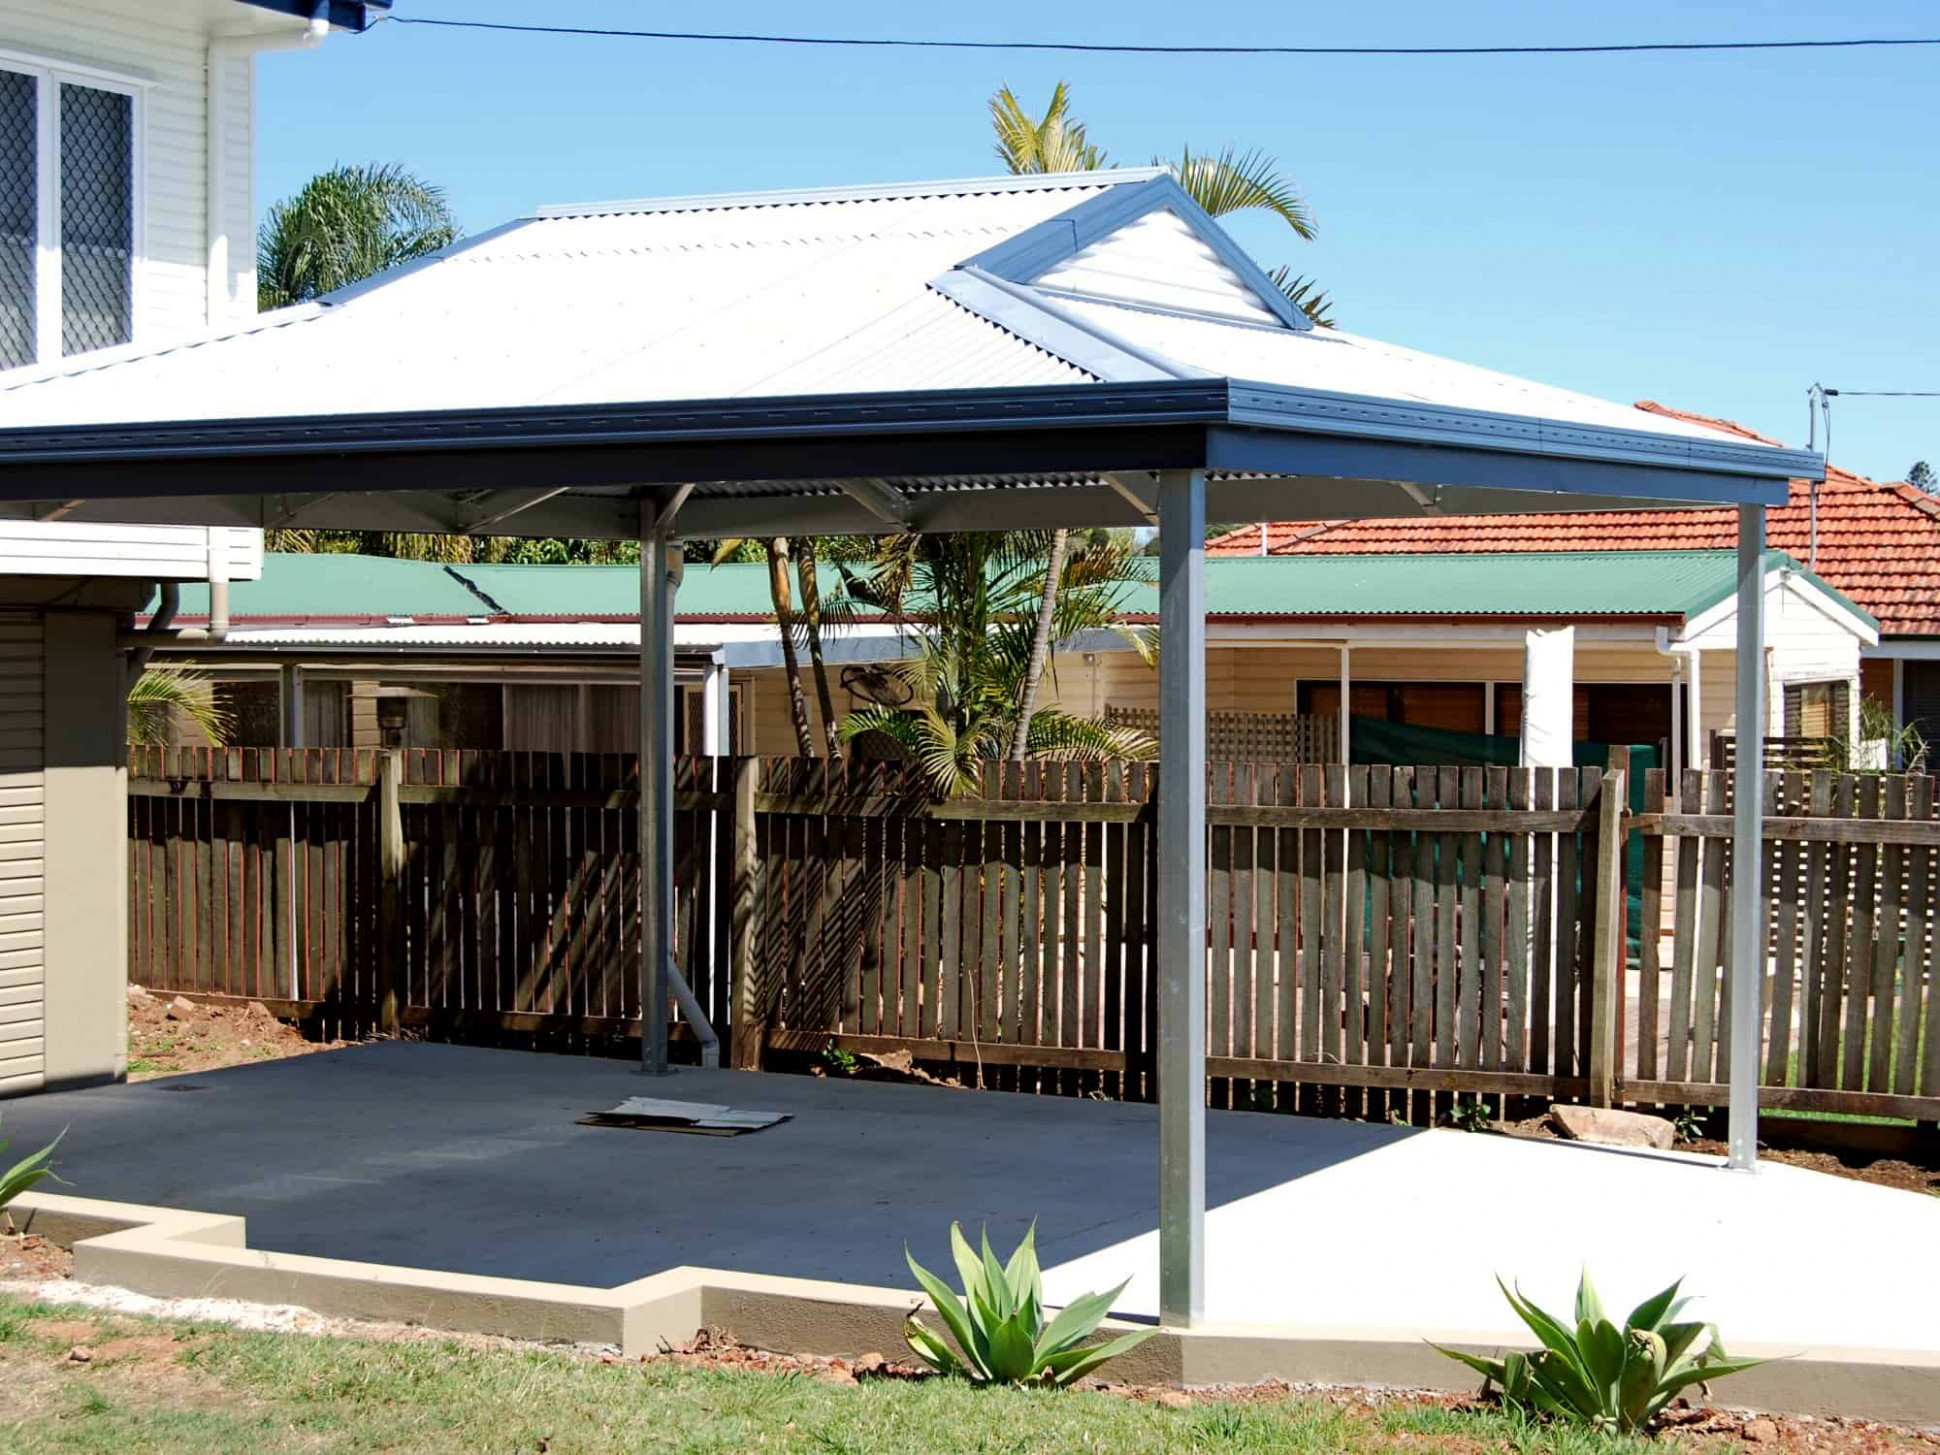 Carports | Any Size, Any Style | Carport Kits Or Installed Carport Contemporary Materials